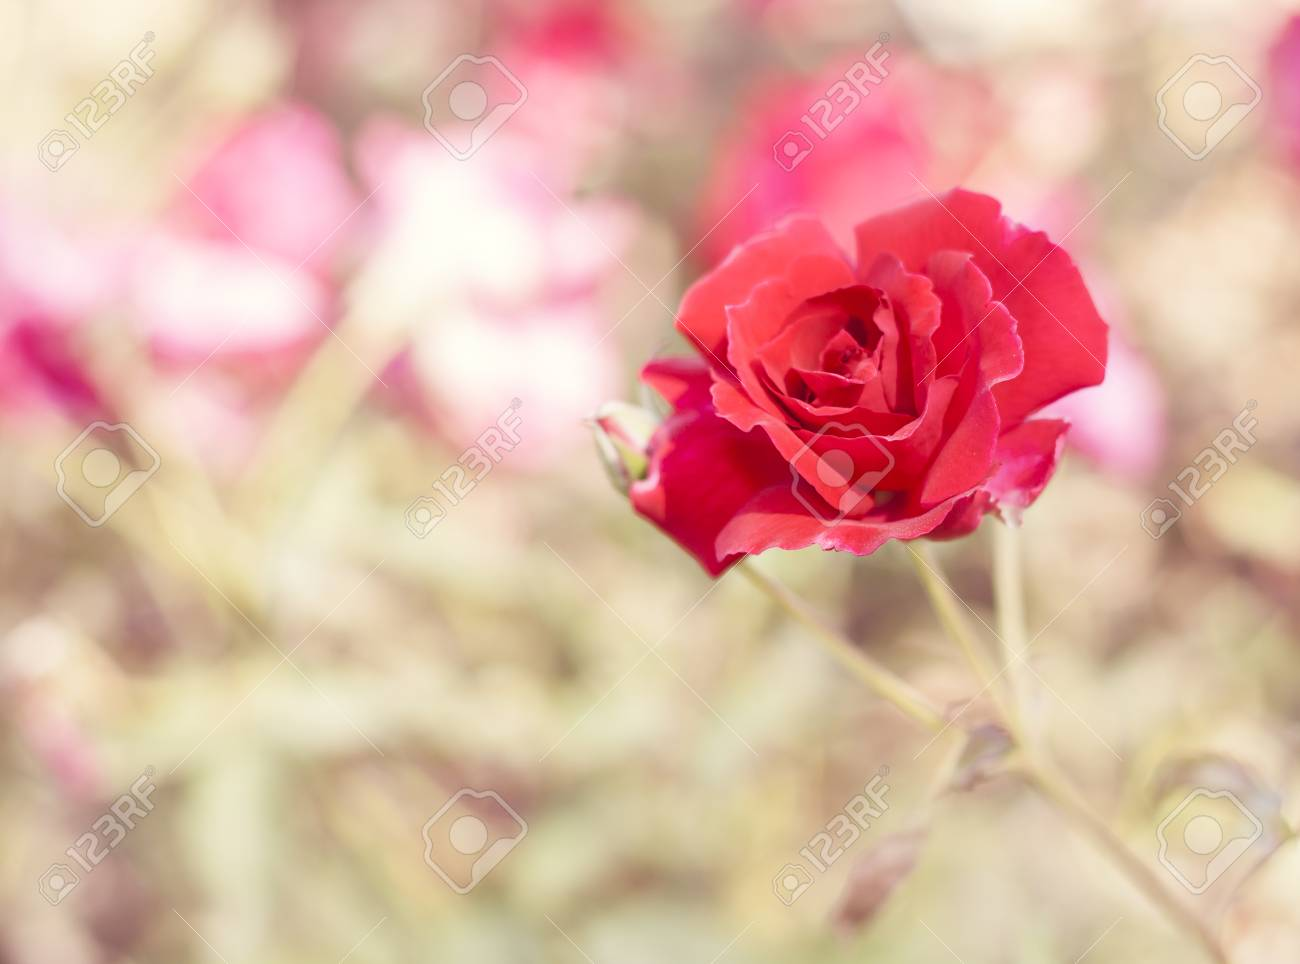 Beautiful Red Rose Flower Blurred Background Flowers Of Spring